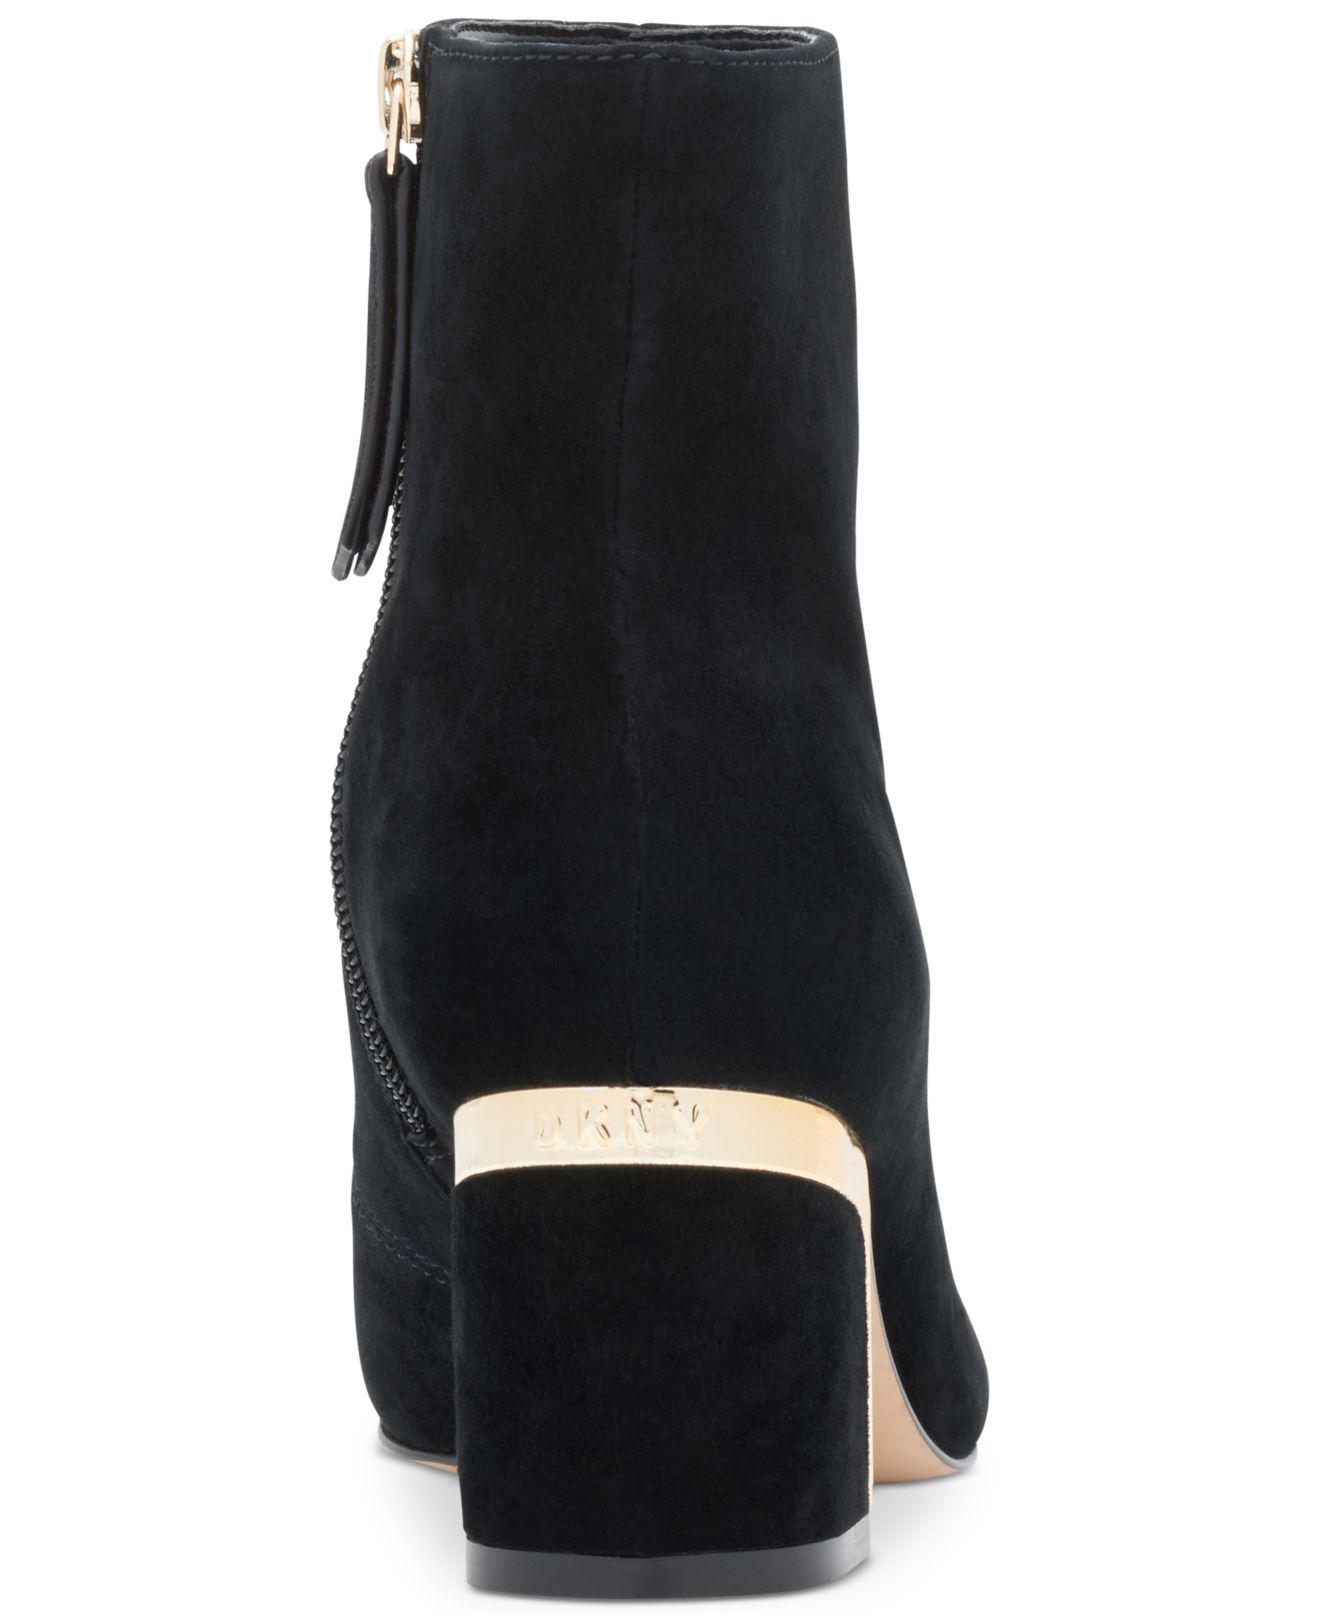 852b9417c DKNY Corrie Ankle Boots in Black - Lyst